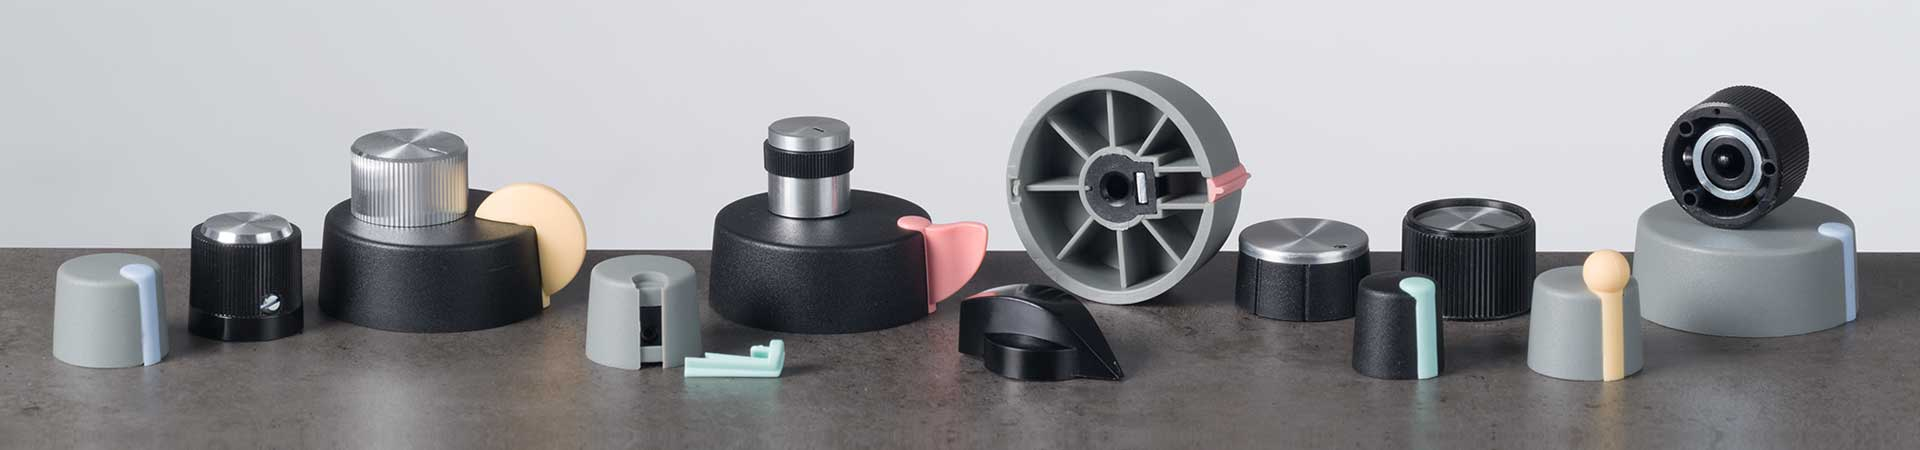 Lateral screw fixing knobs